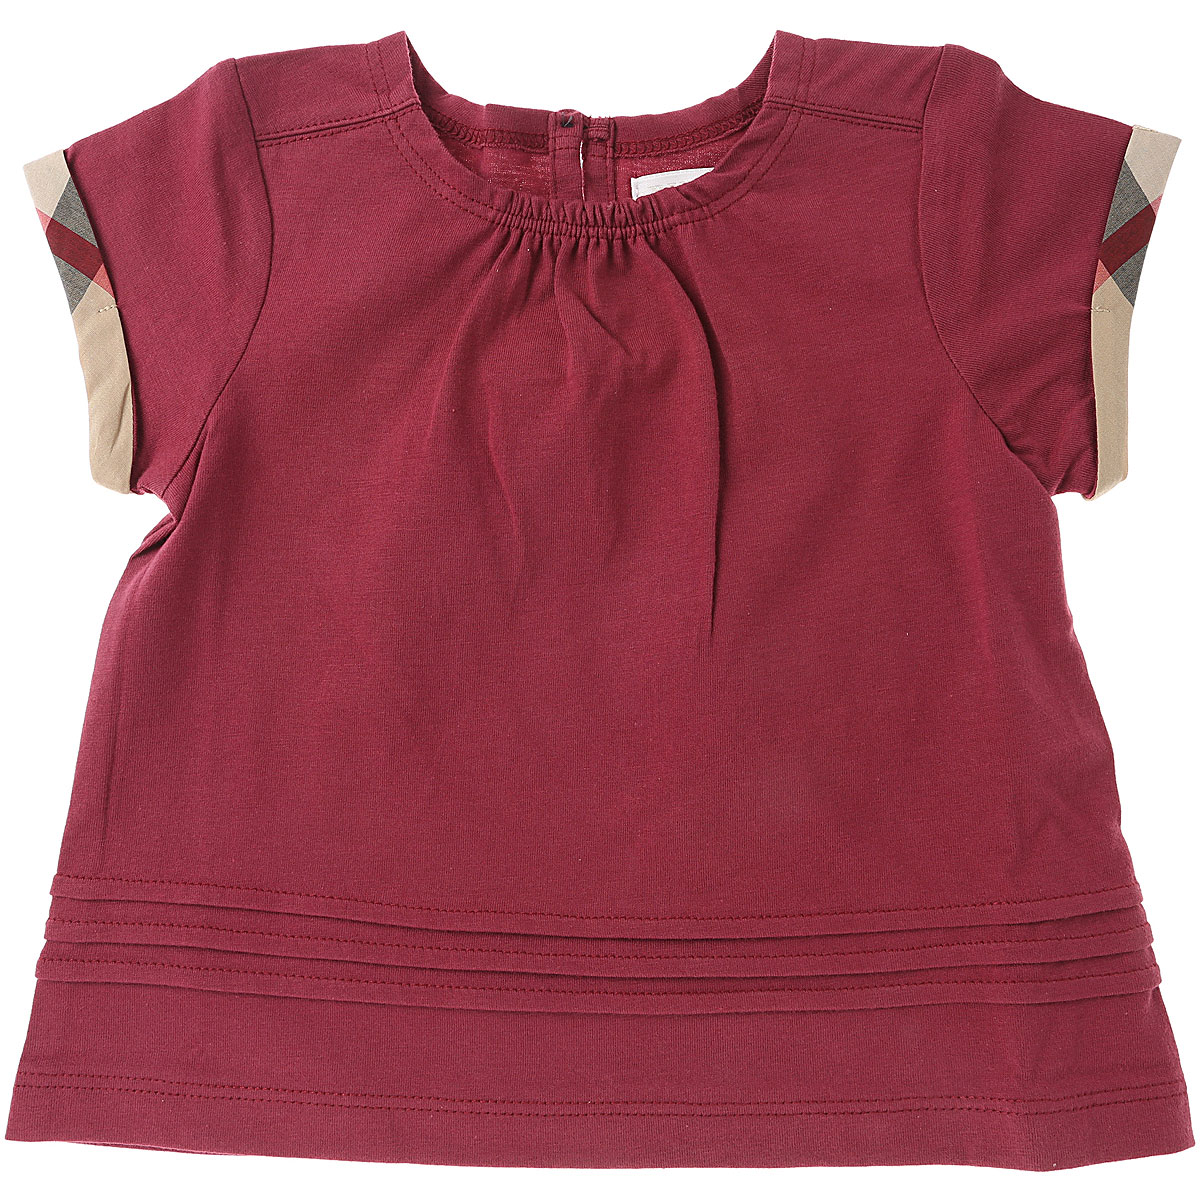 Image of Burberry Baby T-Shirt for Girls, Garnet Pink, Cotton, 2017, 12M 18M 2Y 6M 9M